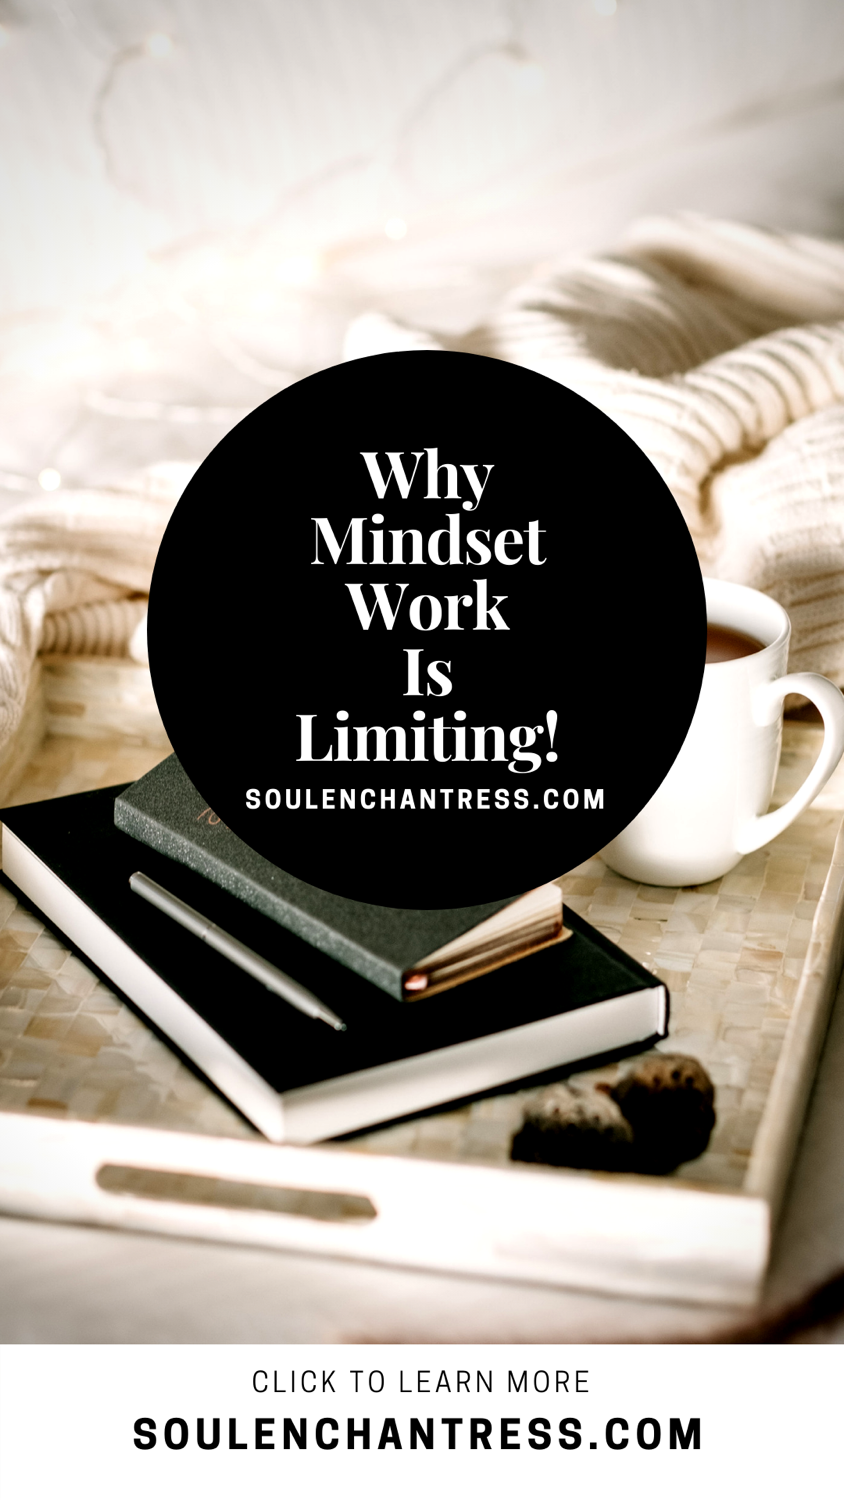 why mindset work is limiting, soul enchantress, money, business, entrepreneurs